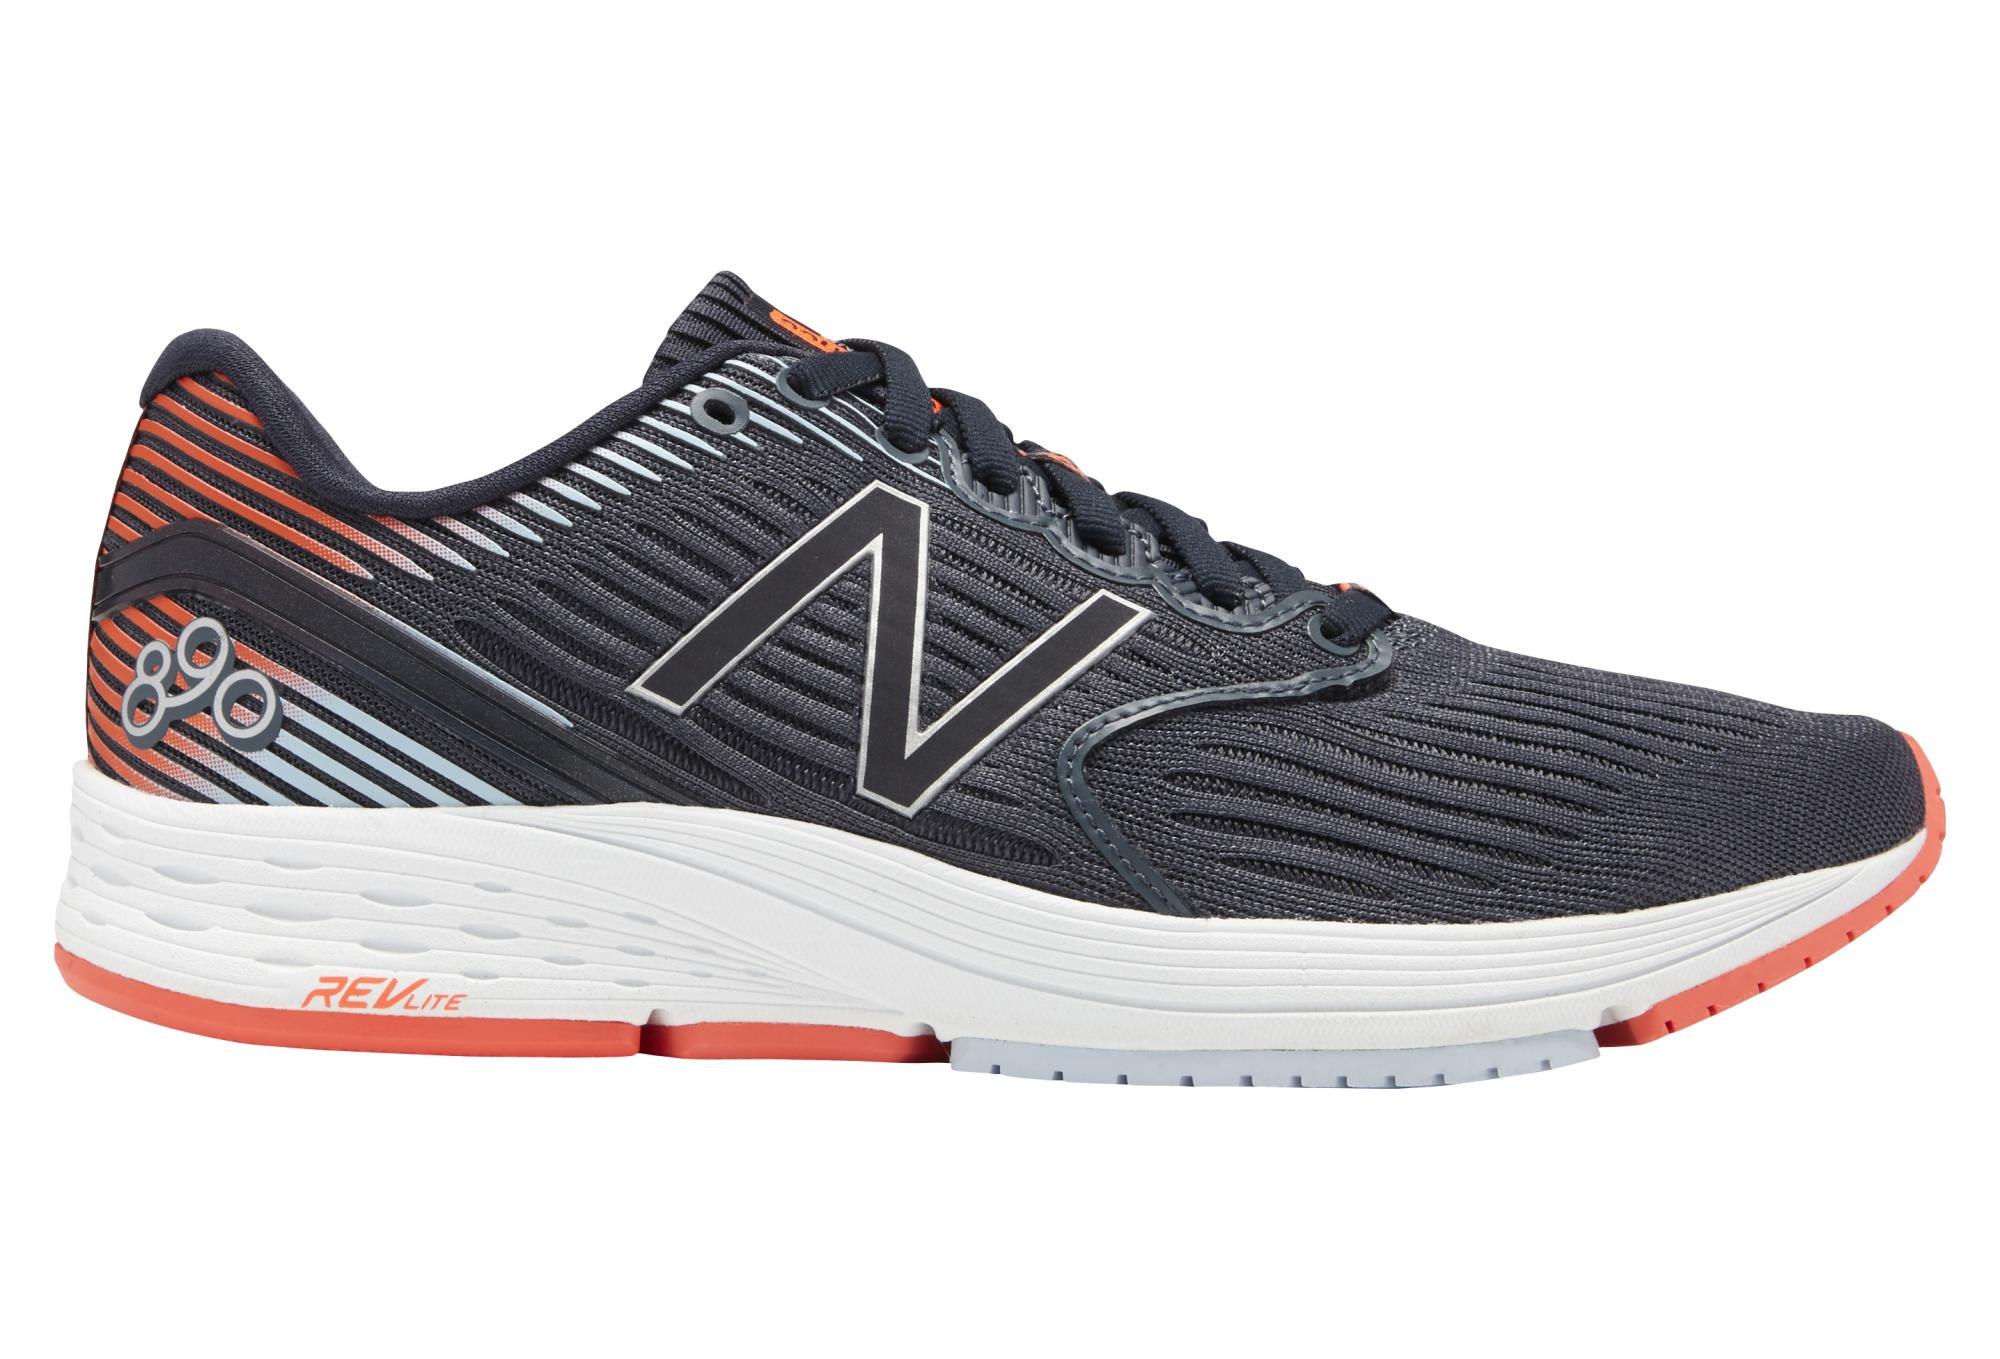 New Balance NBX 890 V6 Grey Orange Women